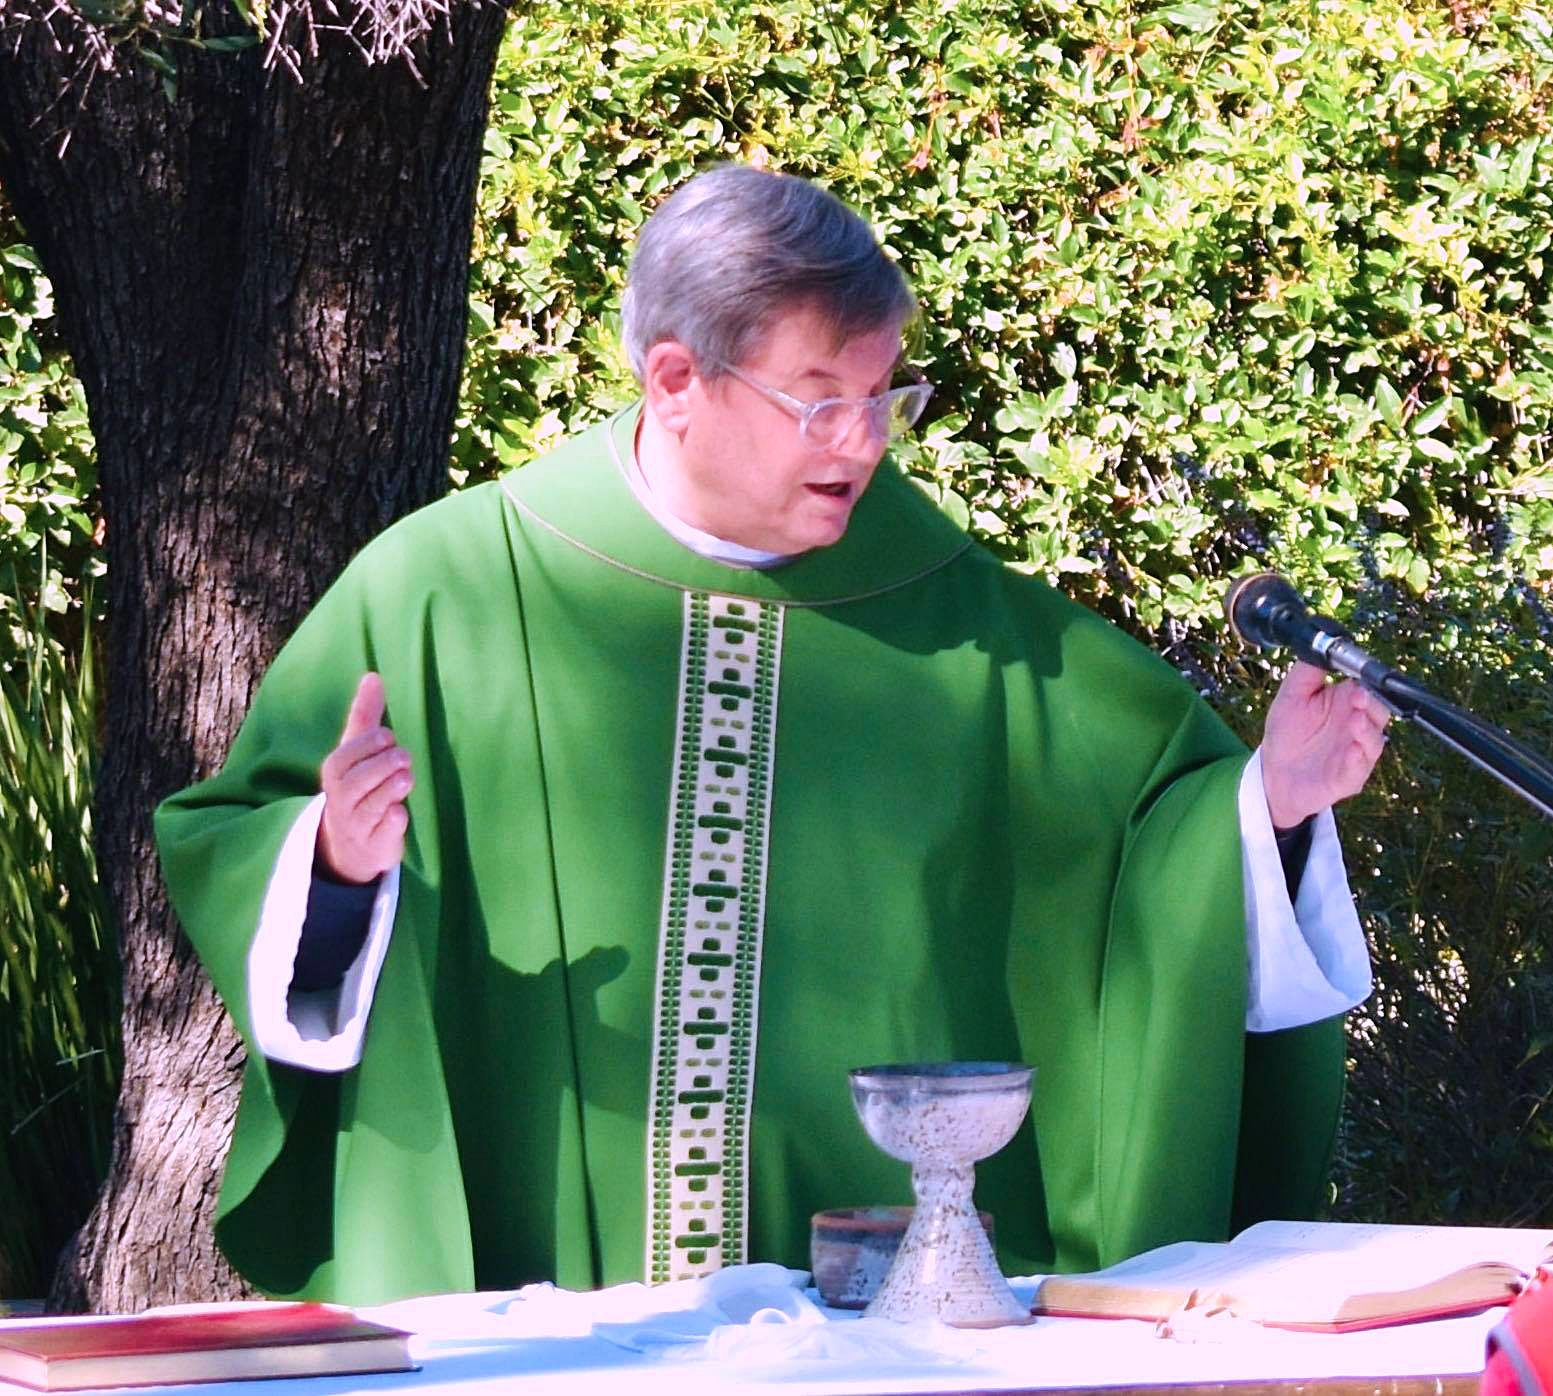 Priest standing outside officiating Sunday church service